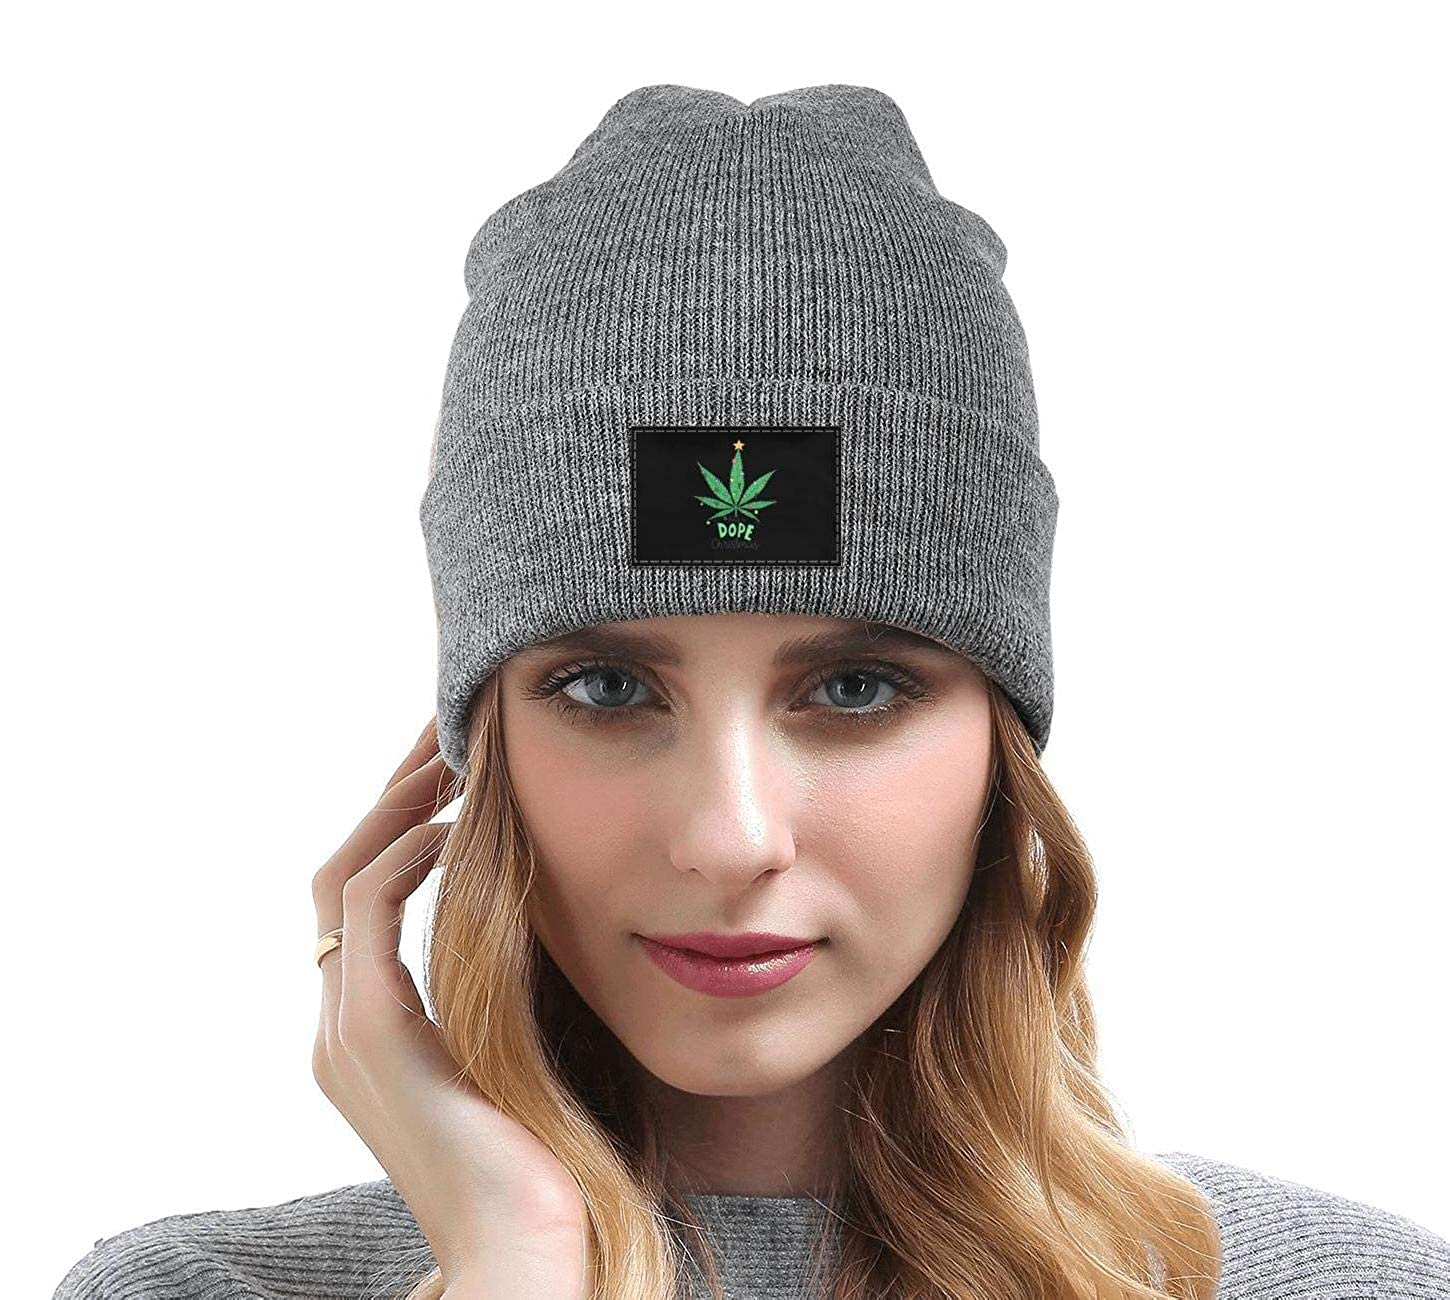 Unisex Marijuana Leaf Have a Dope Christmas Knit Cap Winter Knit Caps for Men Womens